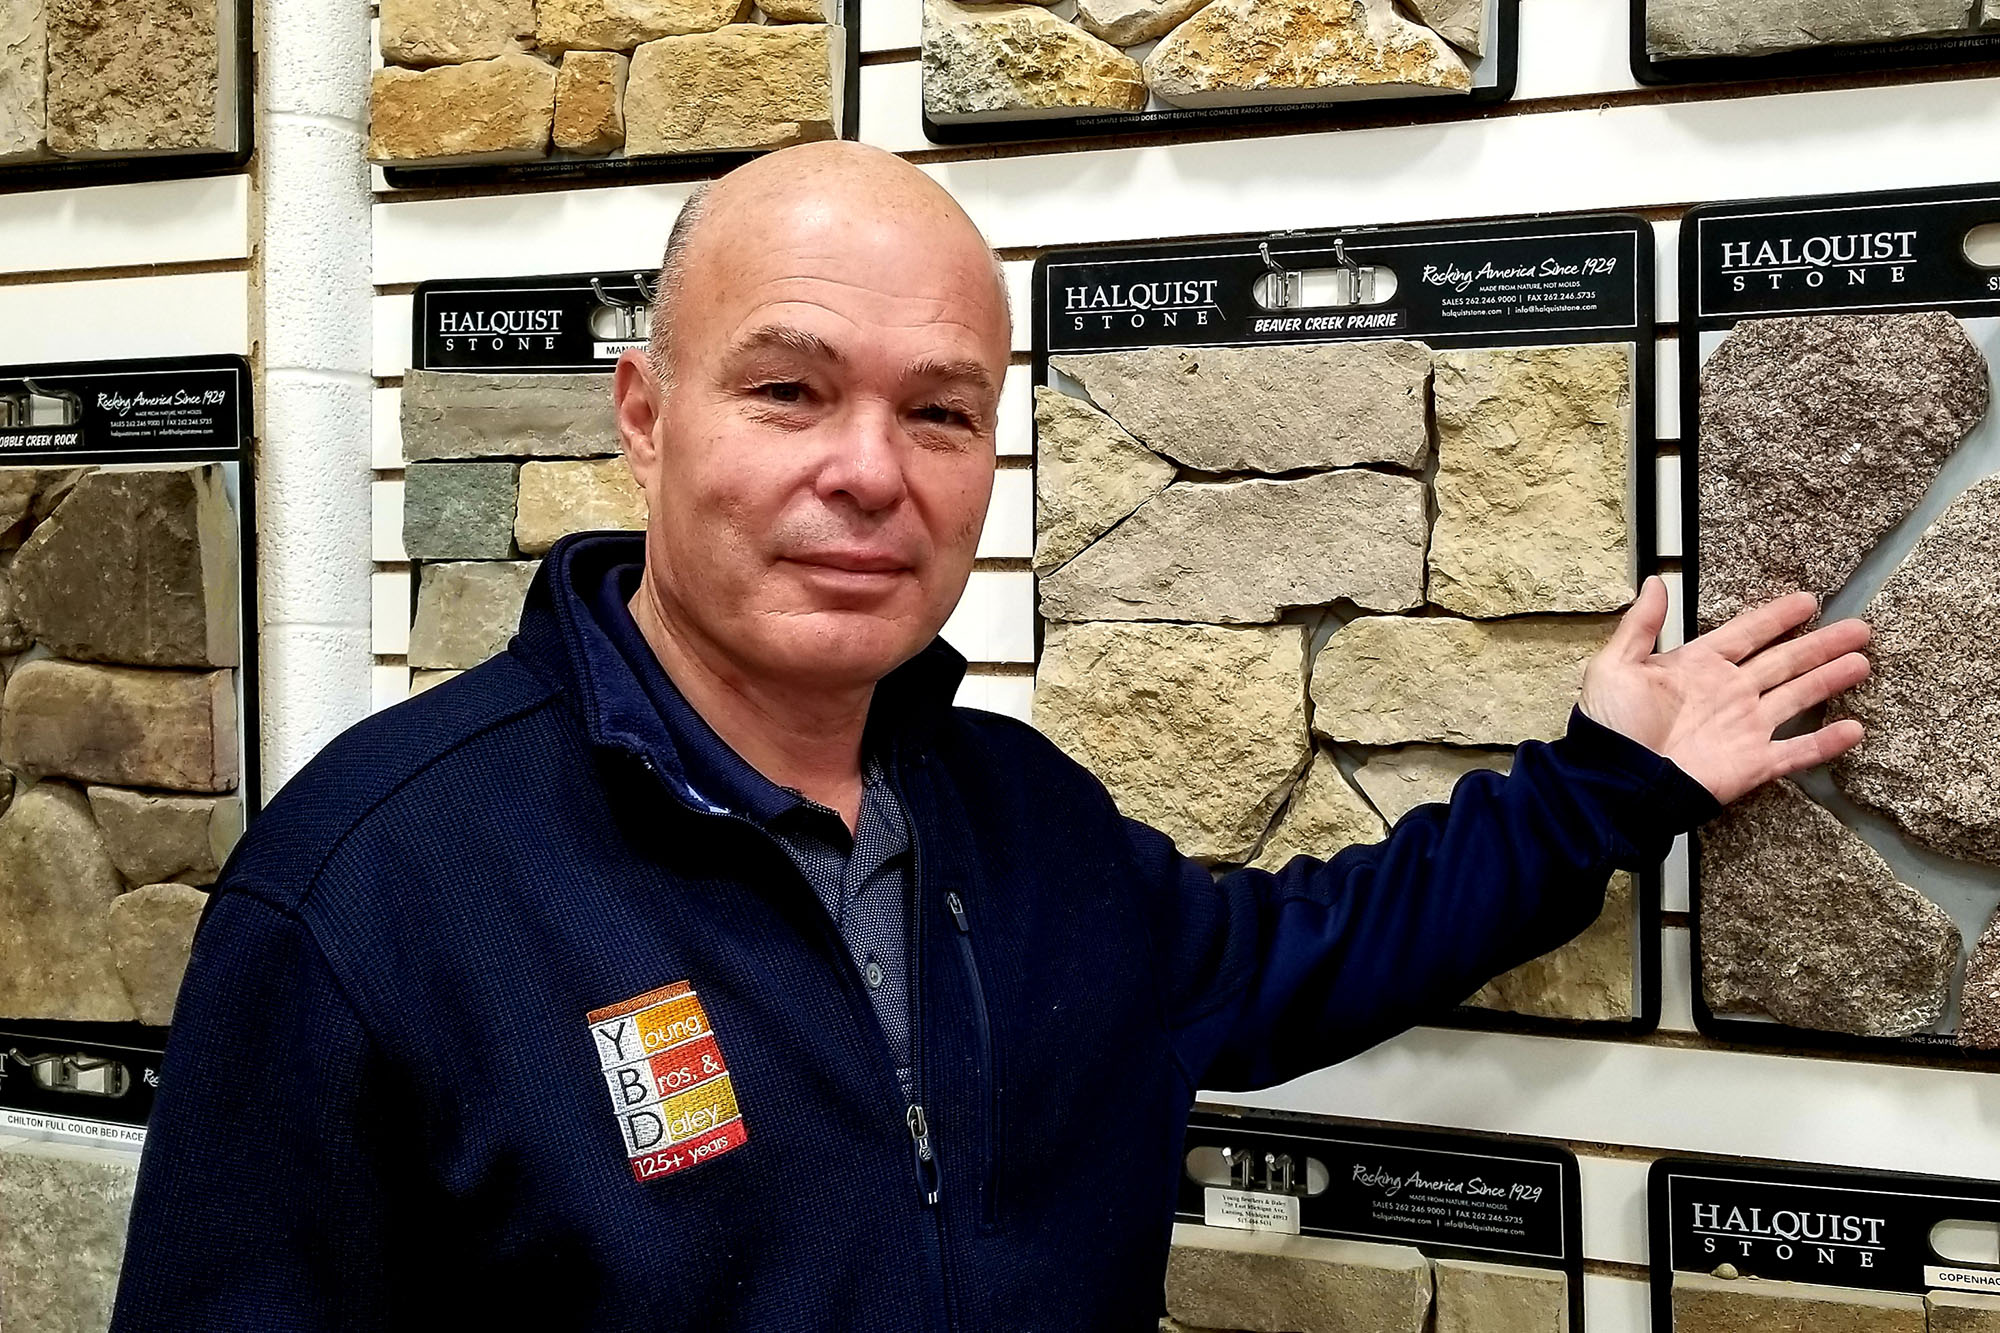 landscape supply store employee with YBD shirt showing stone display